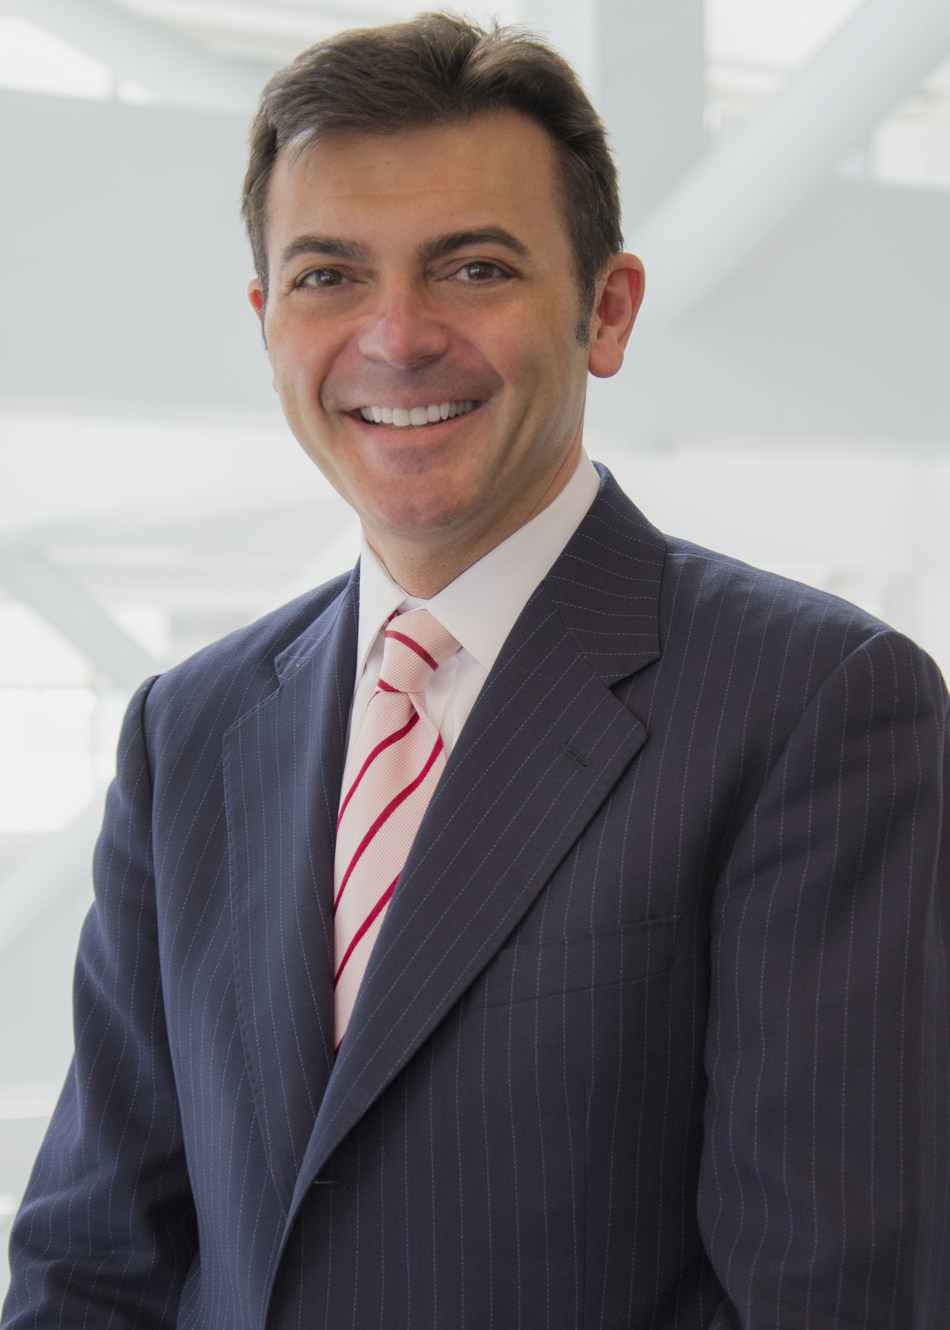 Frank LaSalla, Chief Executive Officer, BNY Mellon Corporate Trust